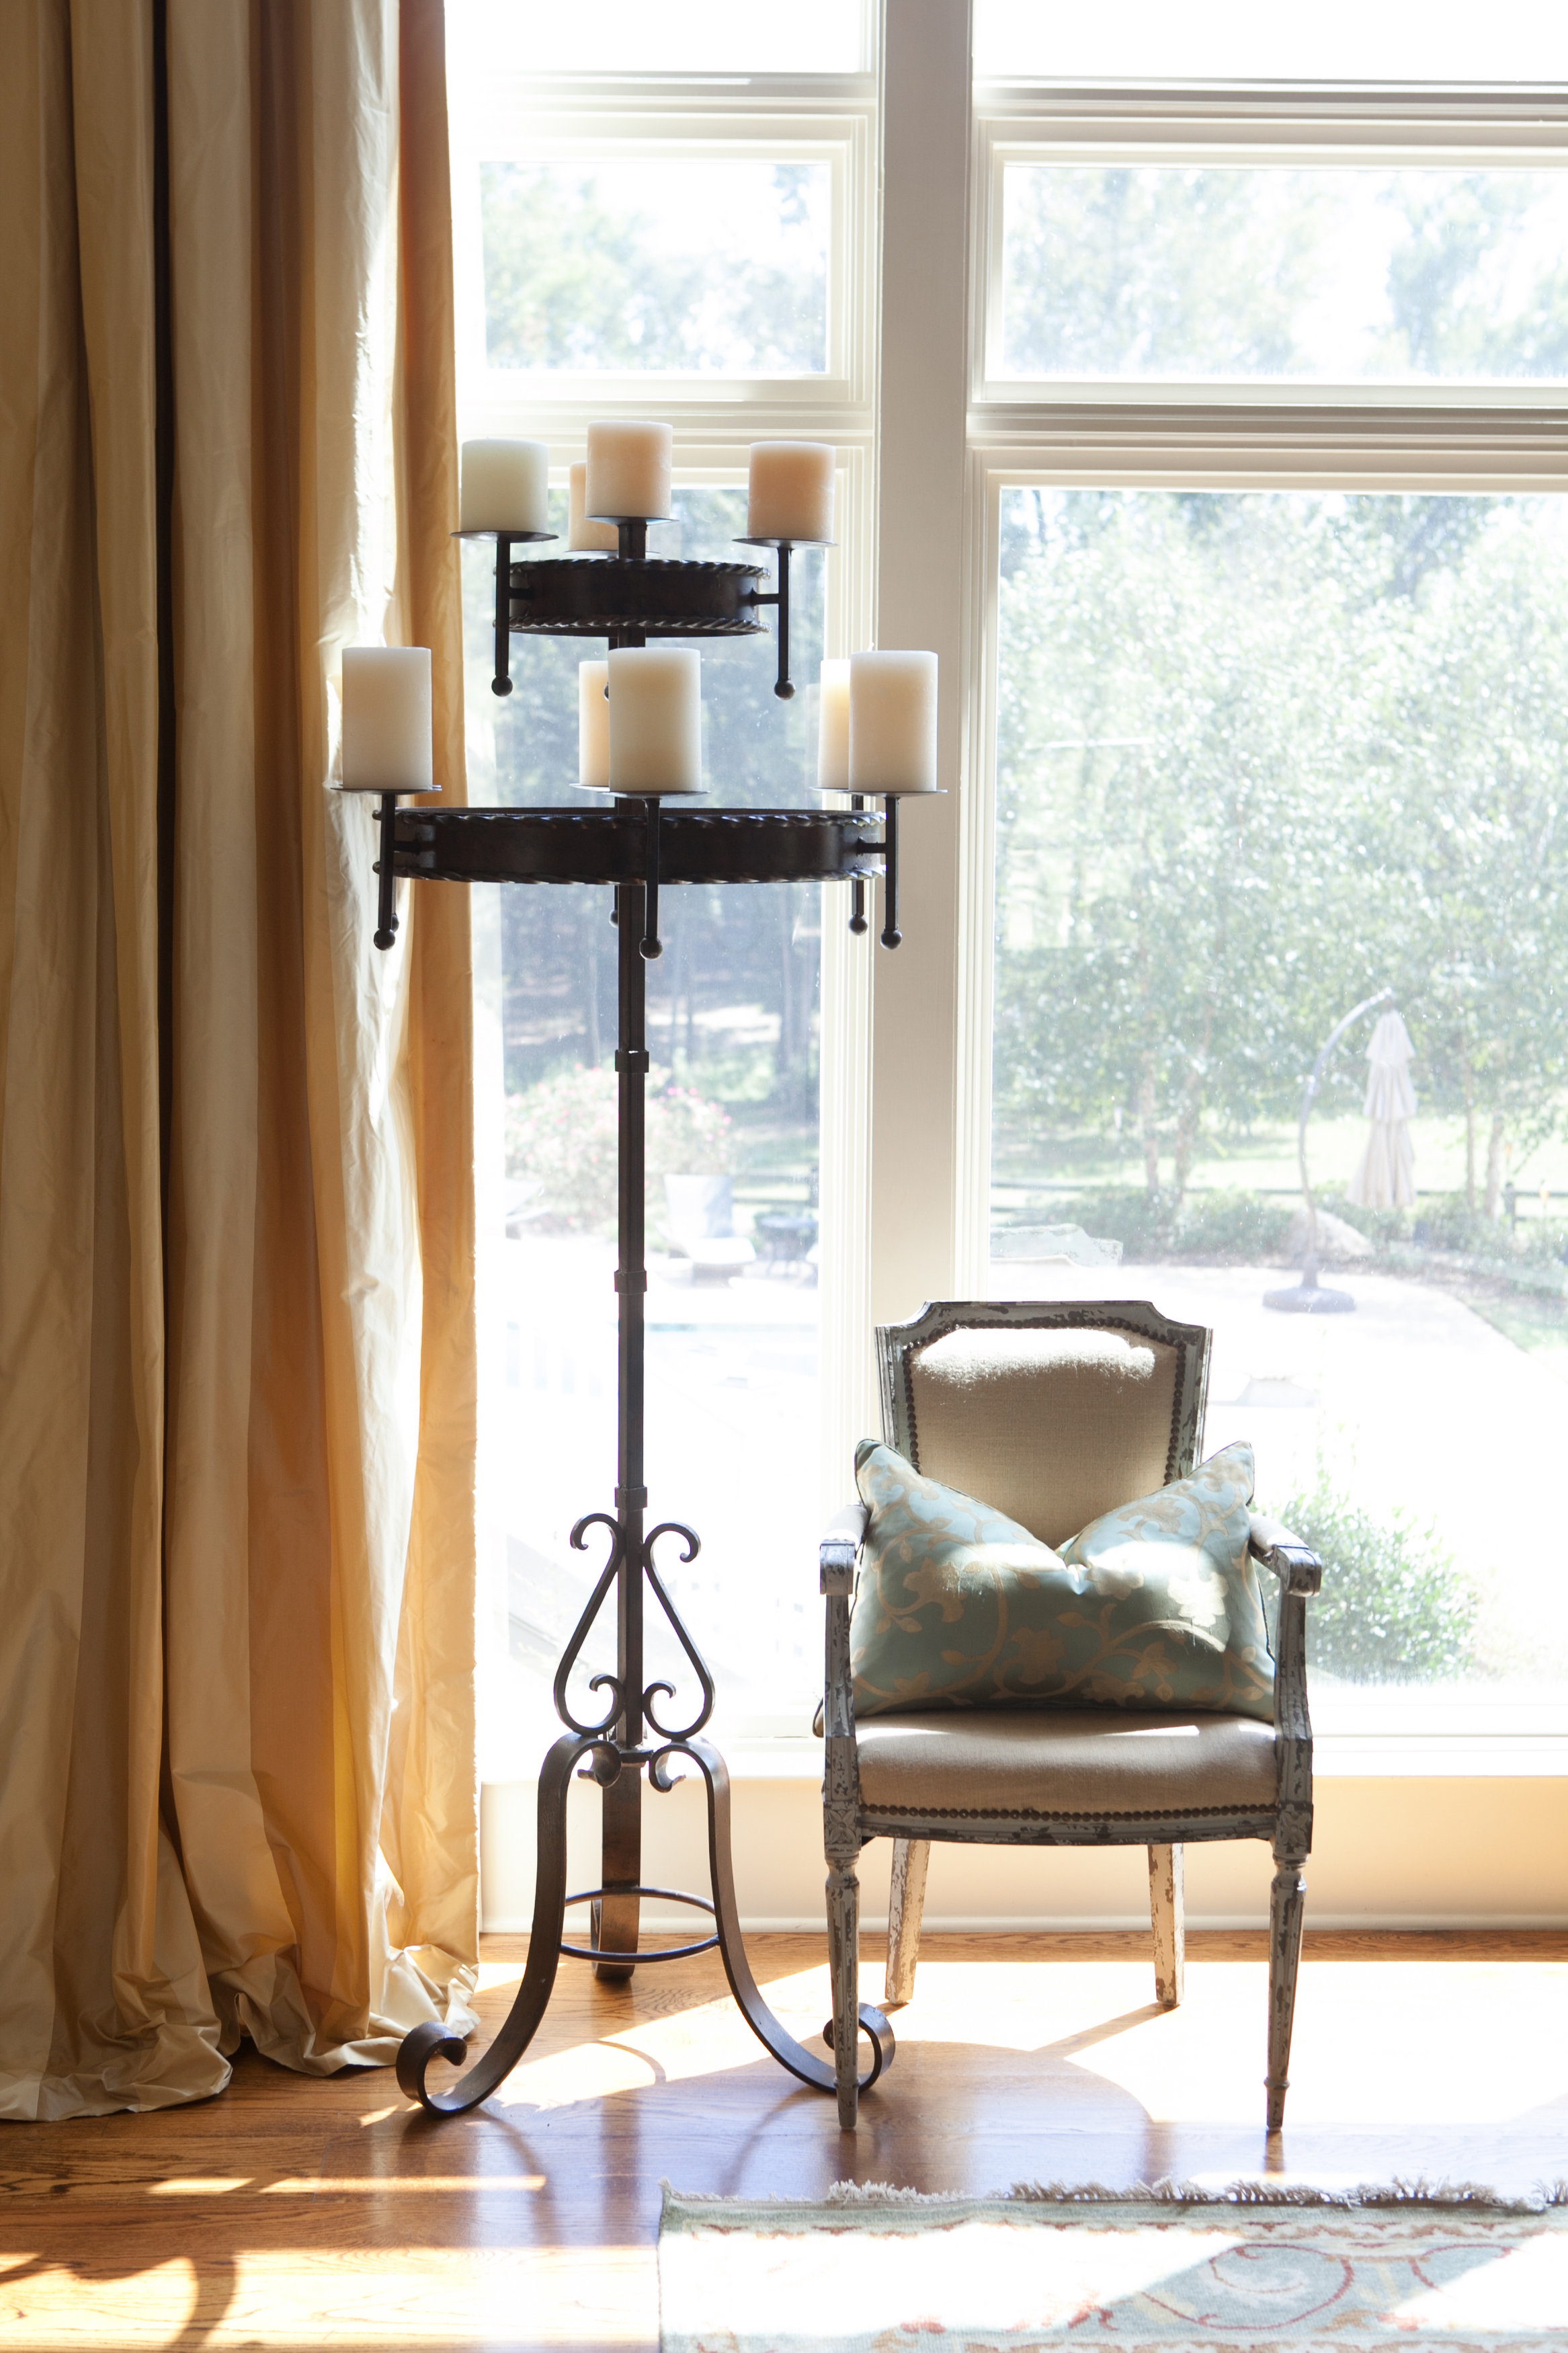 candle and chairs.jpg